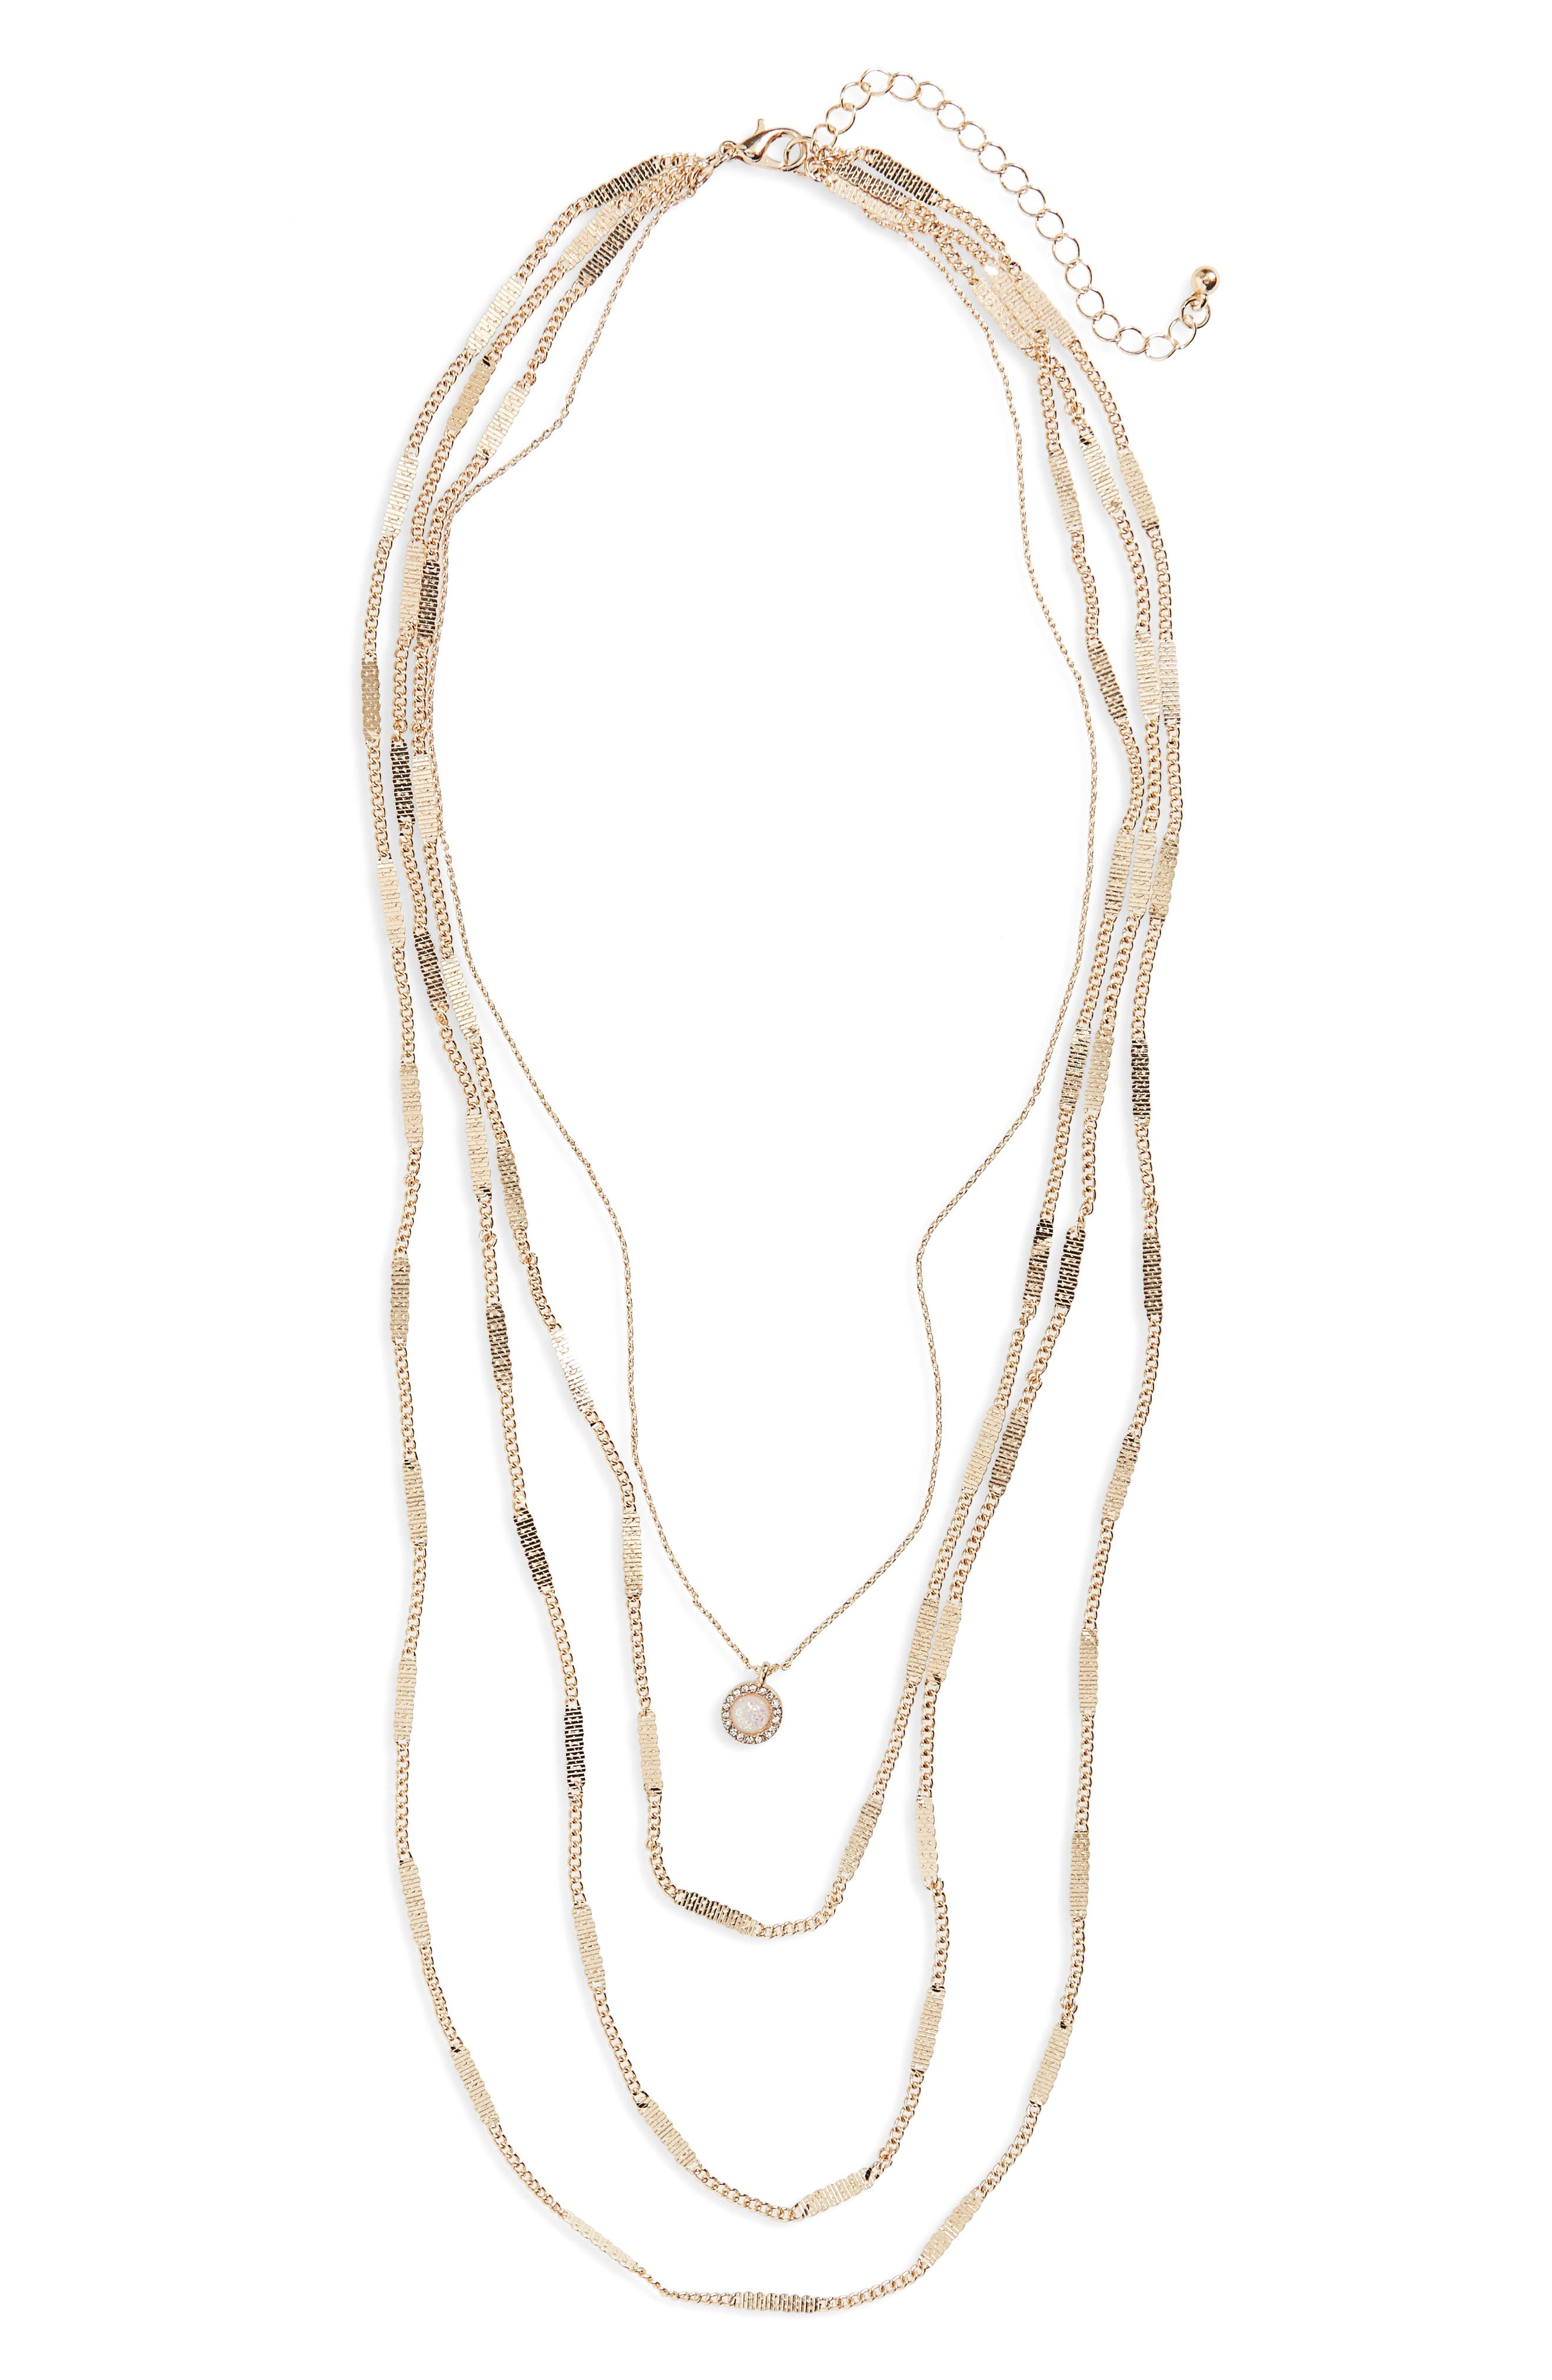 Layered Charm Necklace,                         Main,                         color, Gold/ Crystal